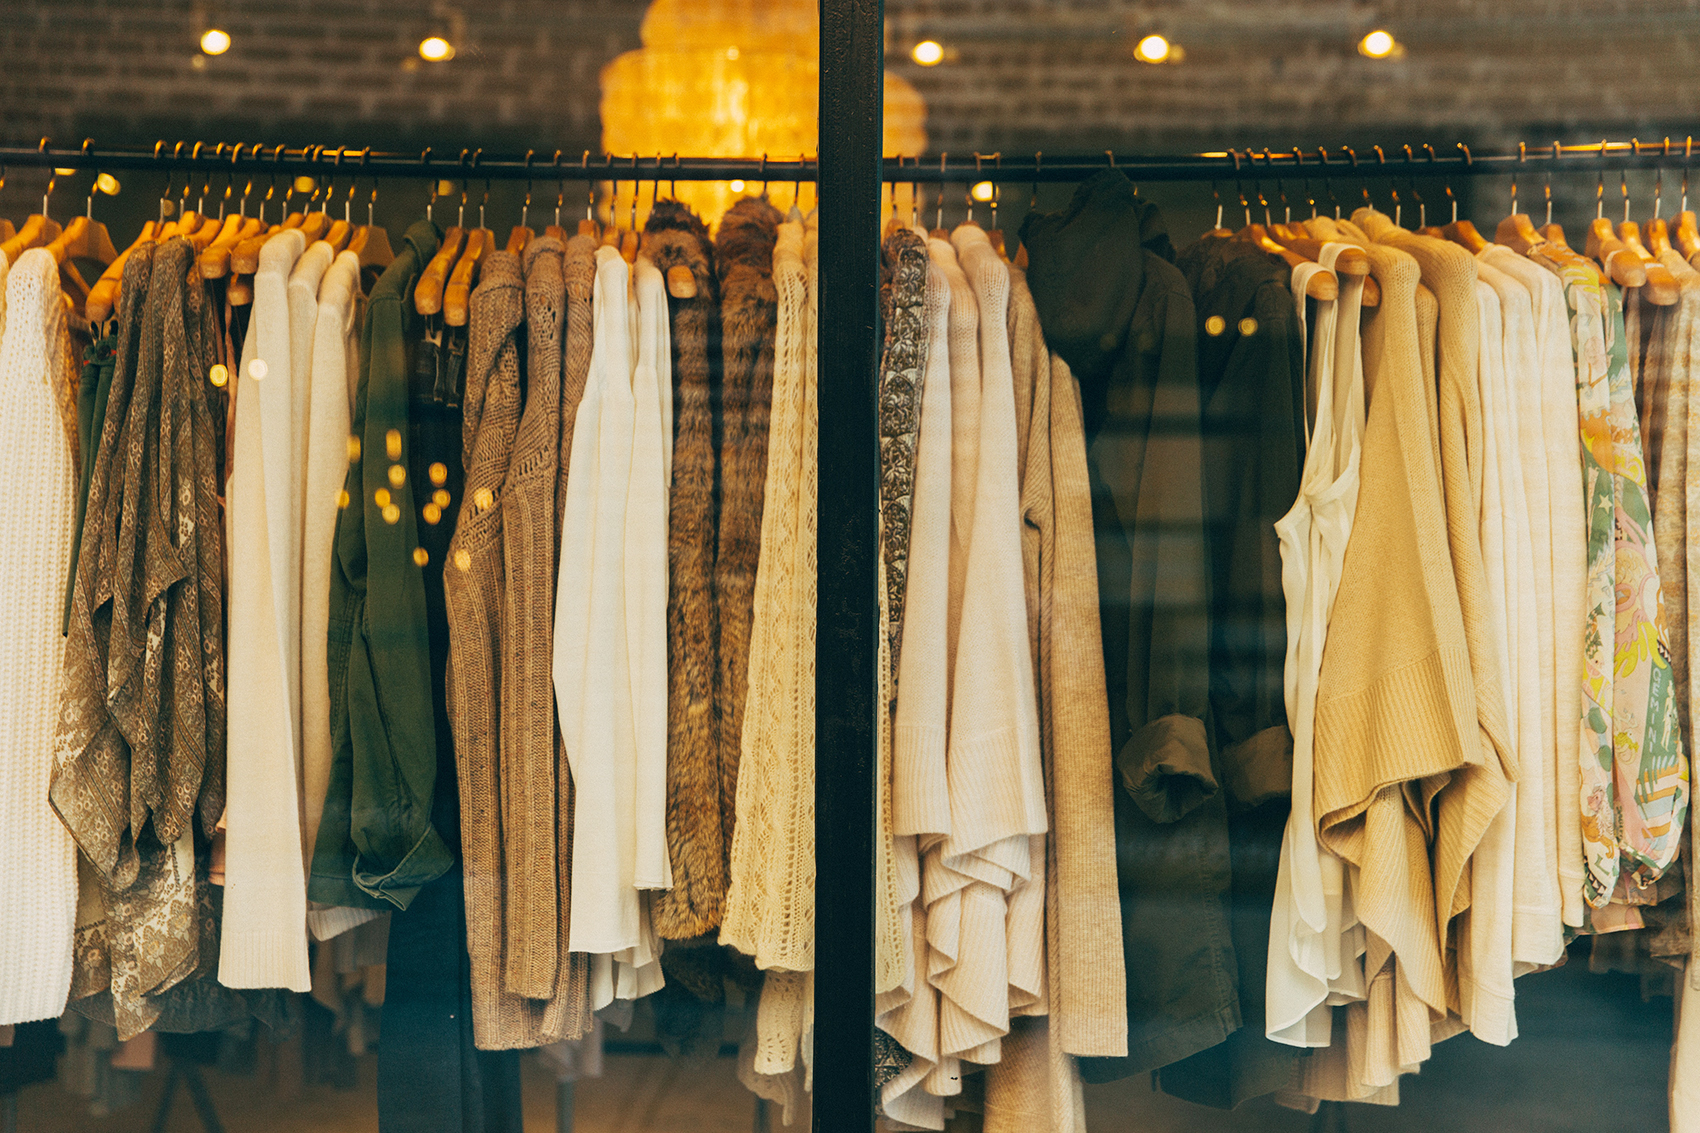 The 10 Best Thrift and Vintage Stores in Brampton